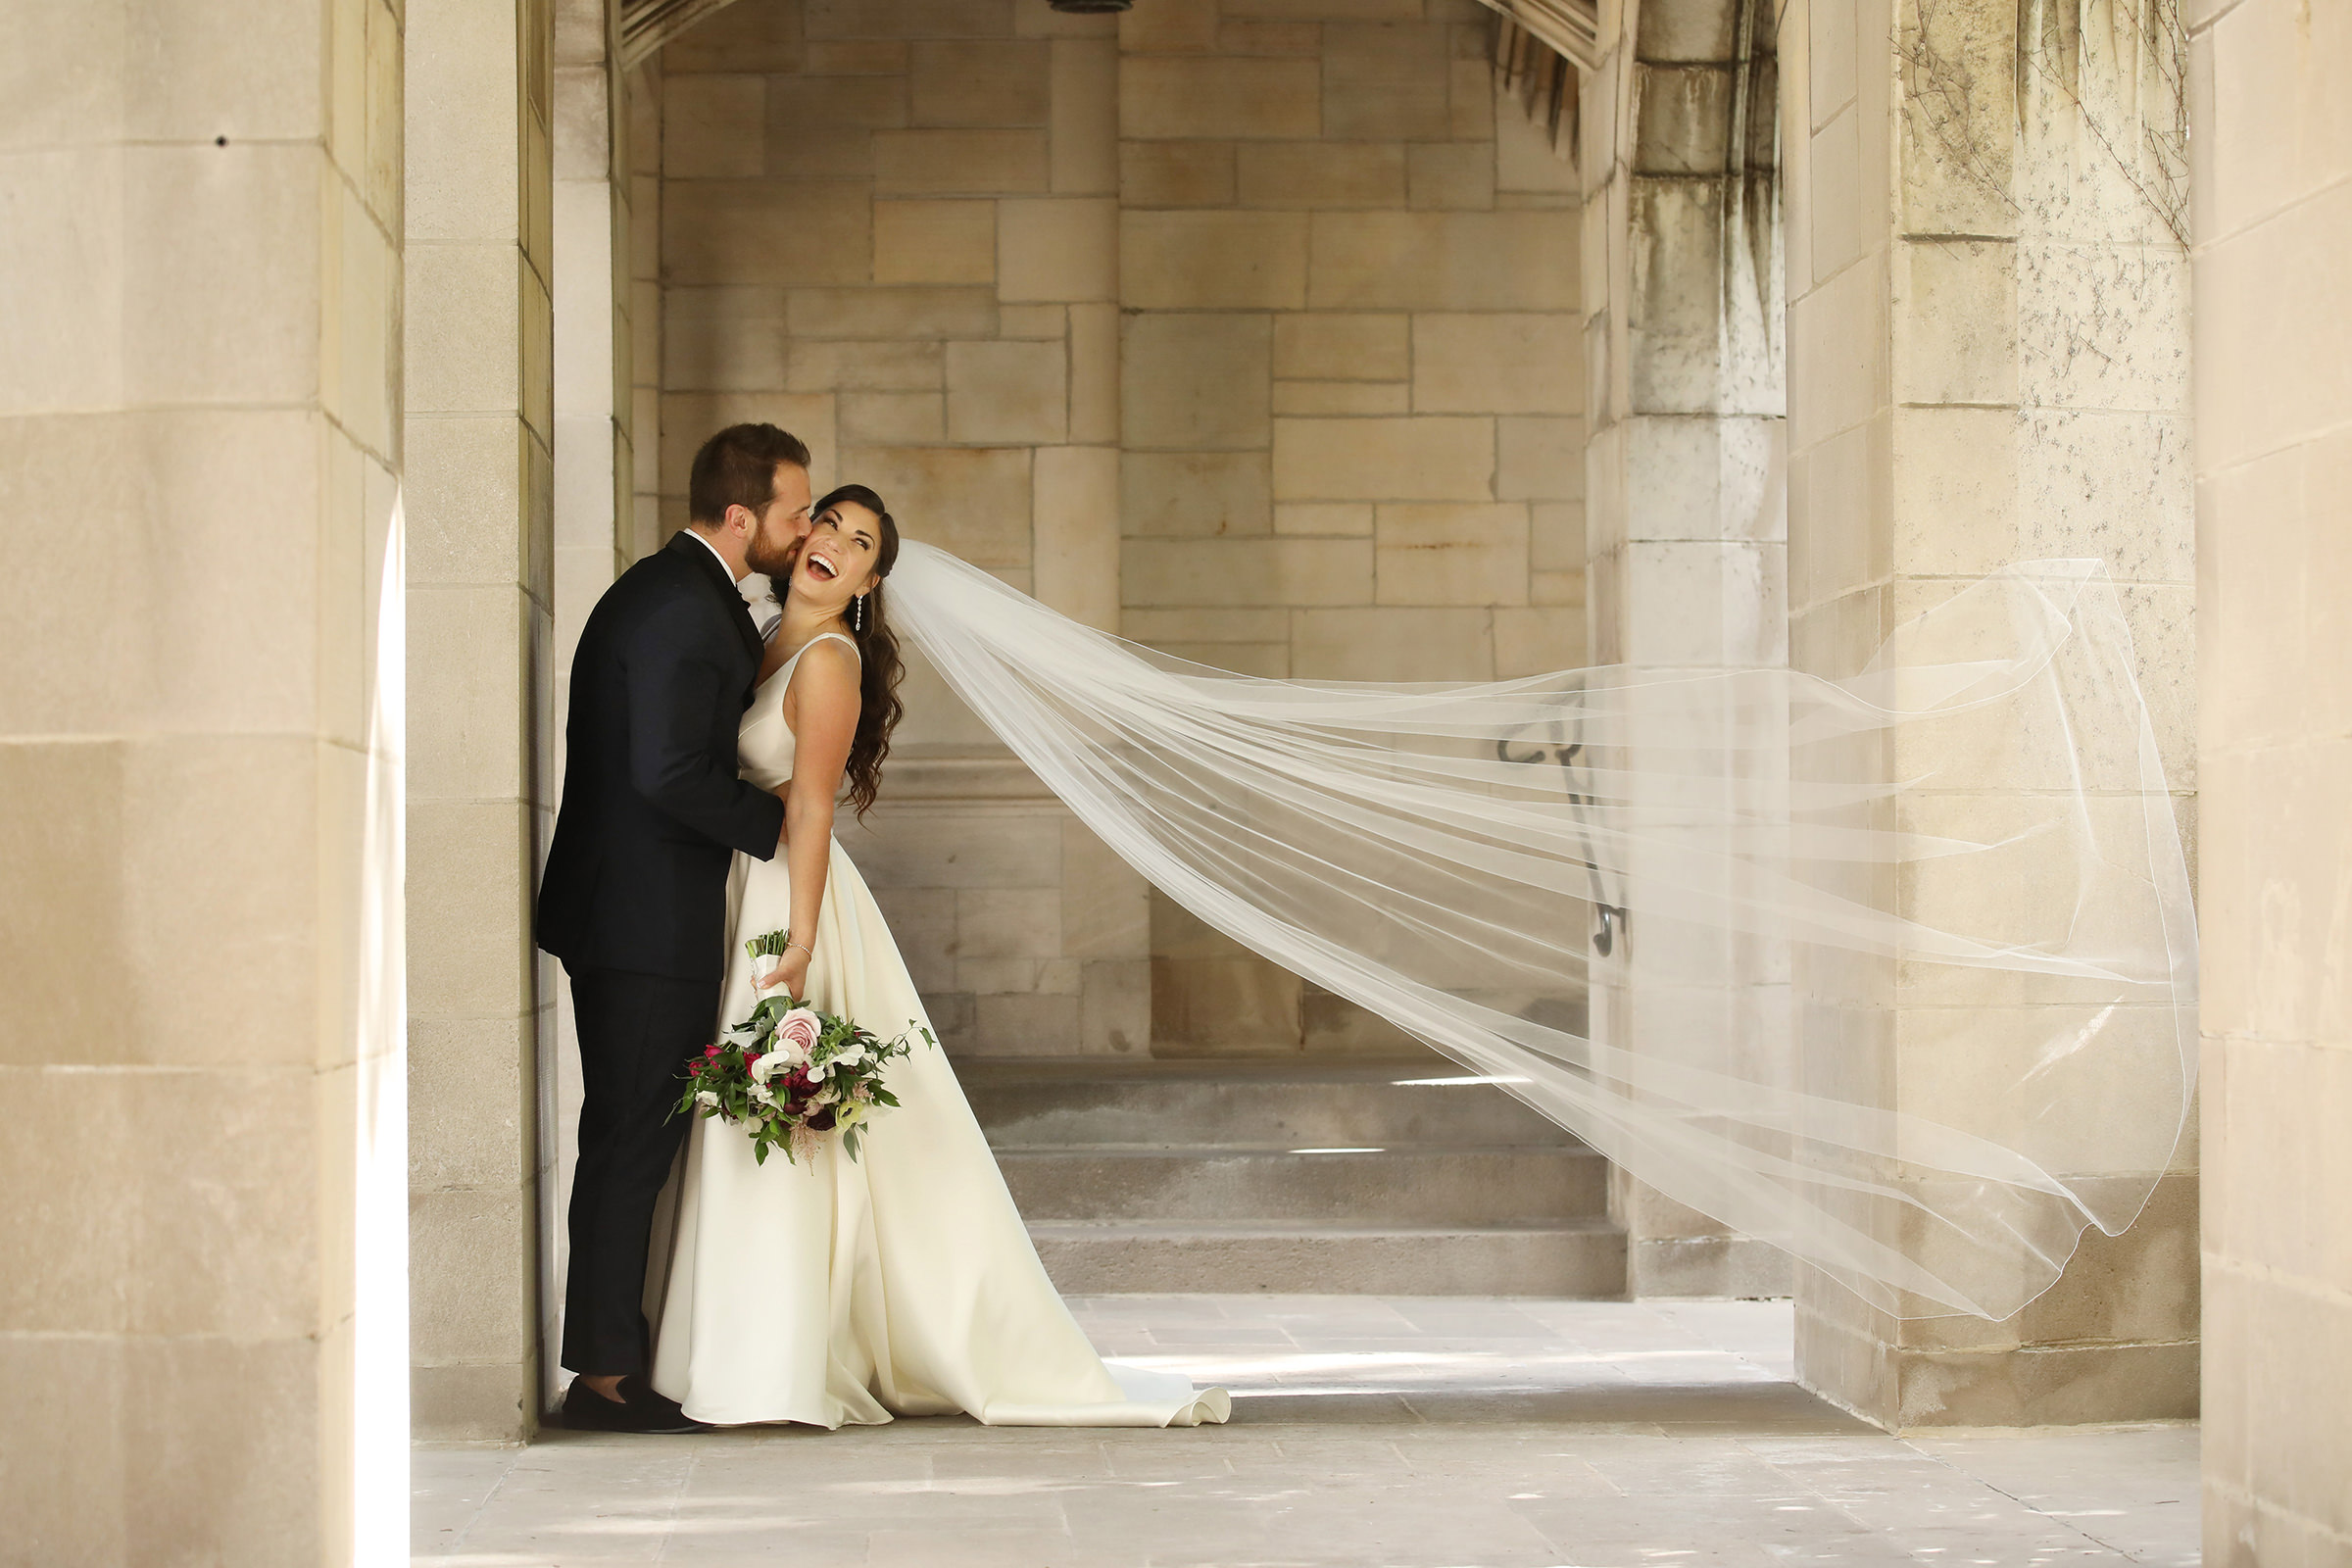 Groom kisses bride with flowing veil - photo by Kenny Kim Photography